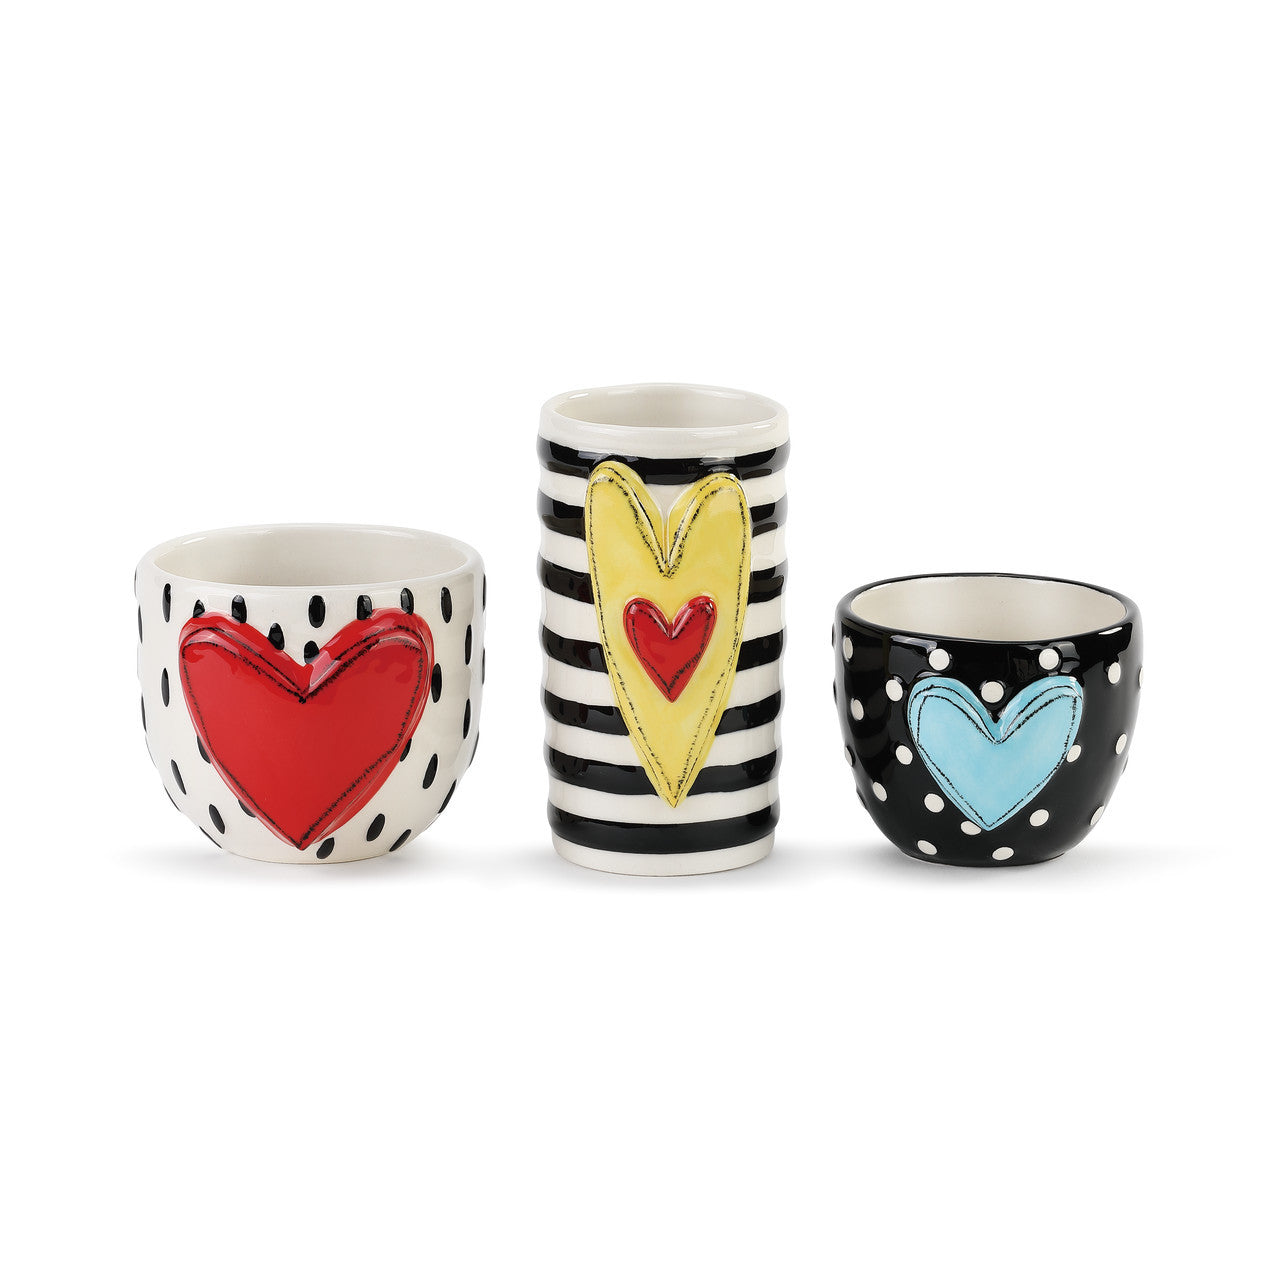 Heart Vases / Snack Cups with Stripes and Dots, Stoneware